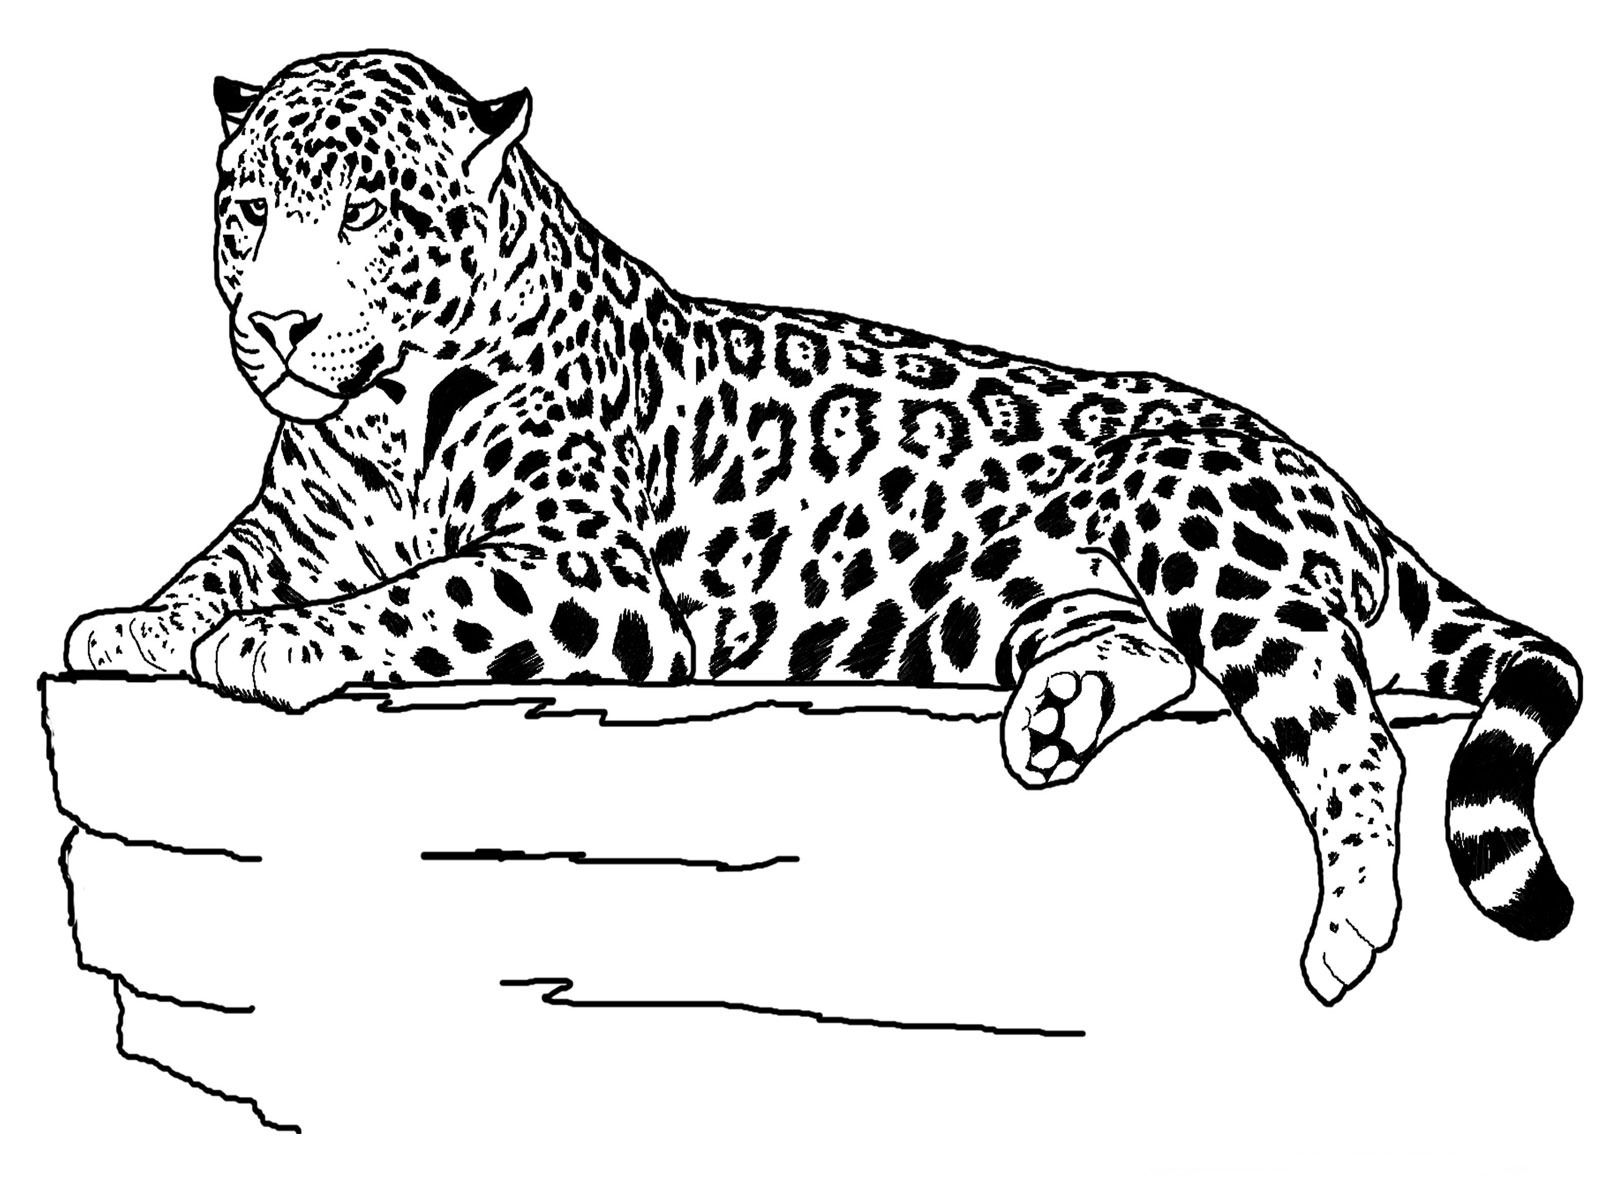 Online childrens coloring pages - Realistic Animals Coloring Pages Printable Coloring Pages Sheets For Kids Get The Latest Free Realistic Animals Coloring Pages Images Favorite Coloring